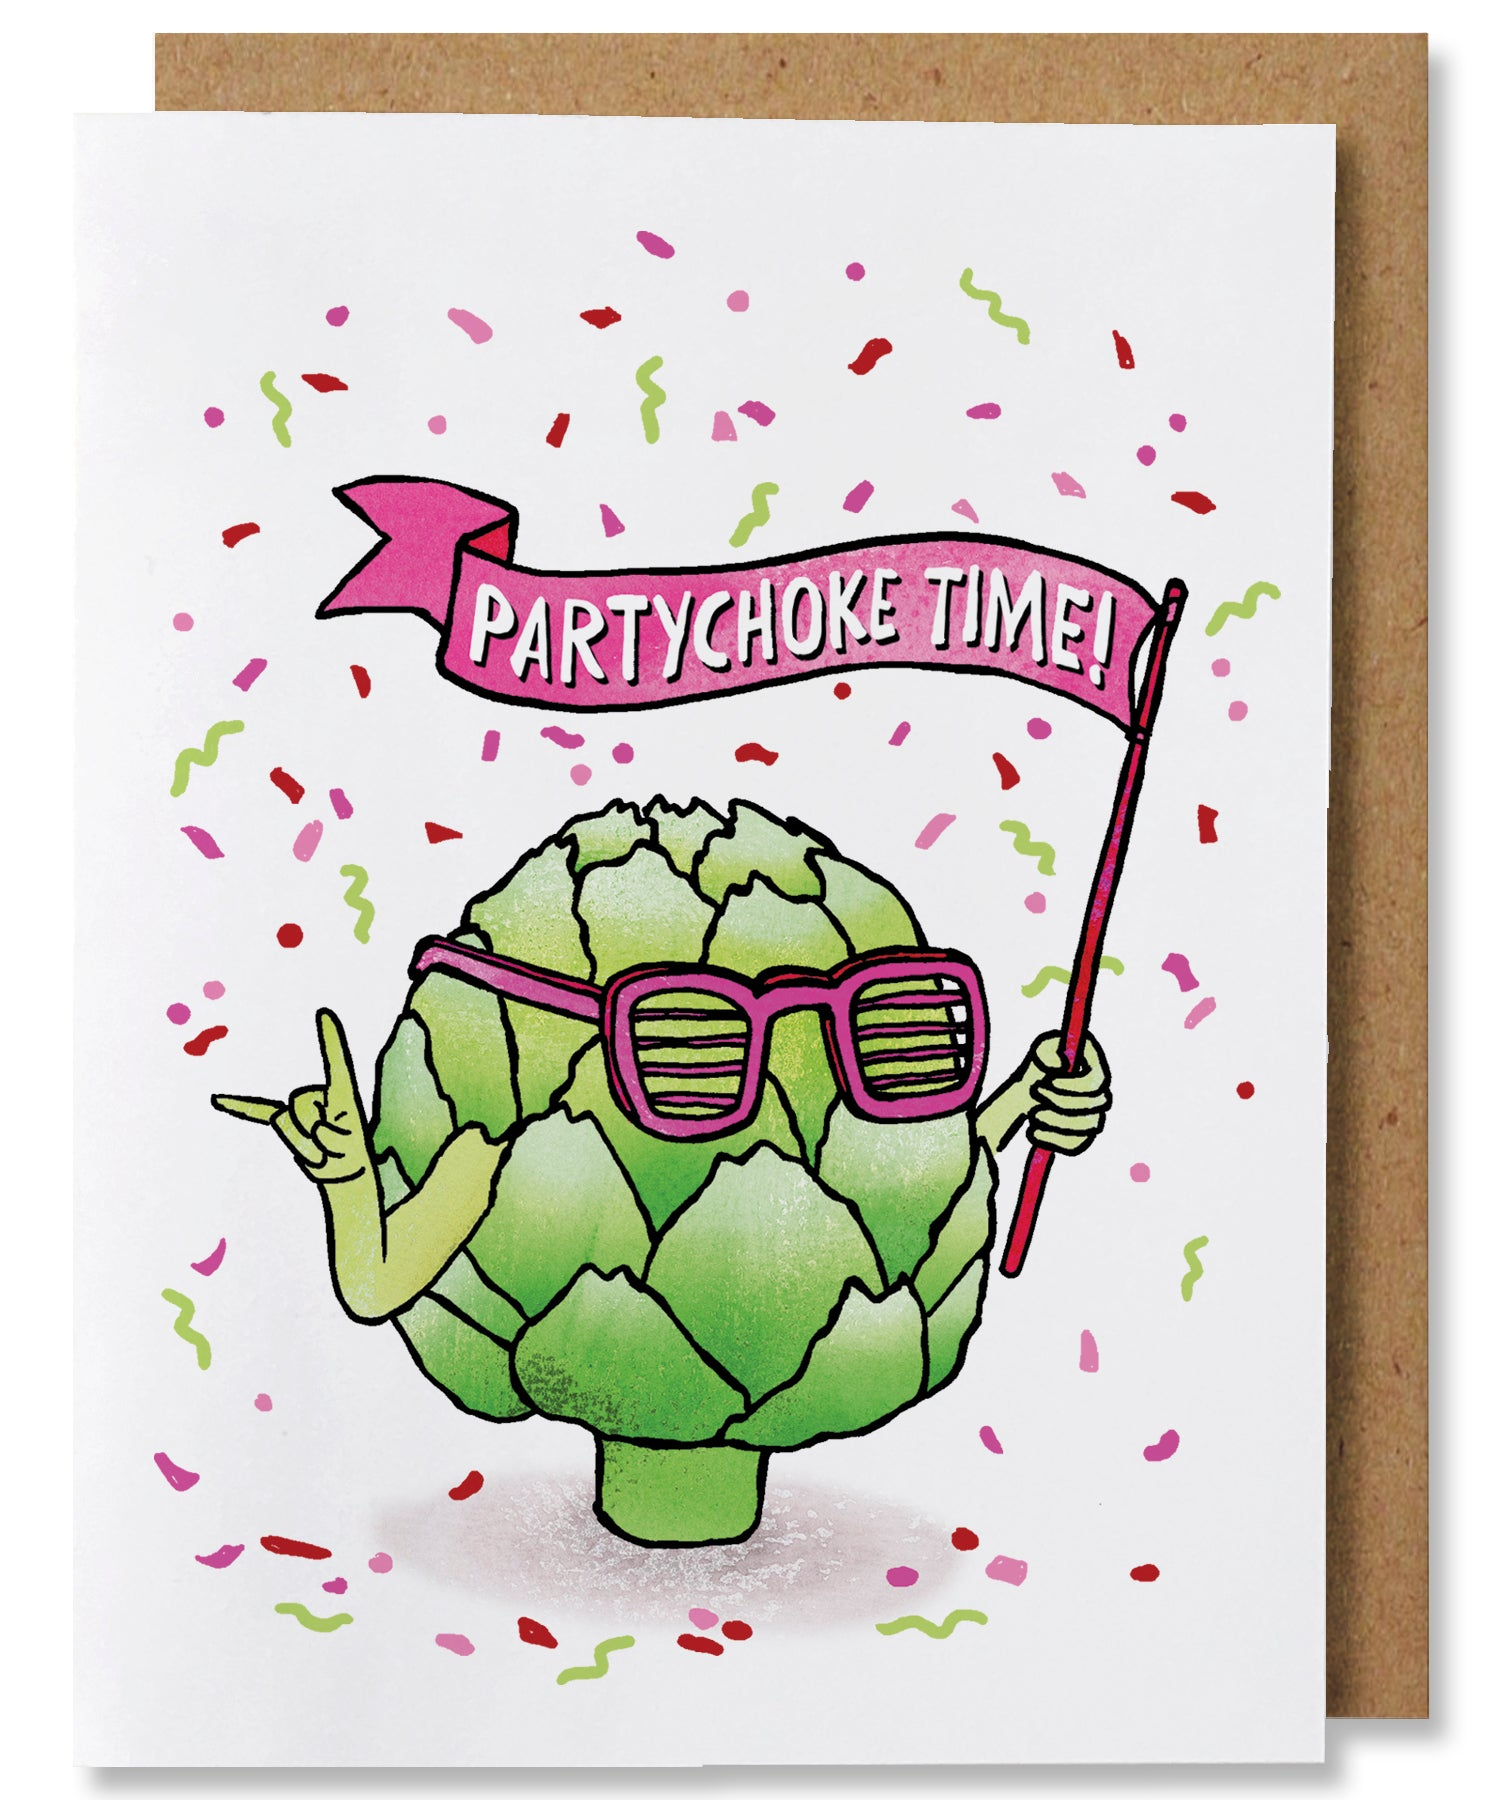 Partychoke Time Greeting Card - Heart of the Home PA